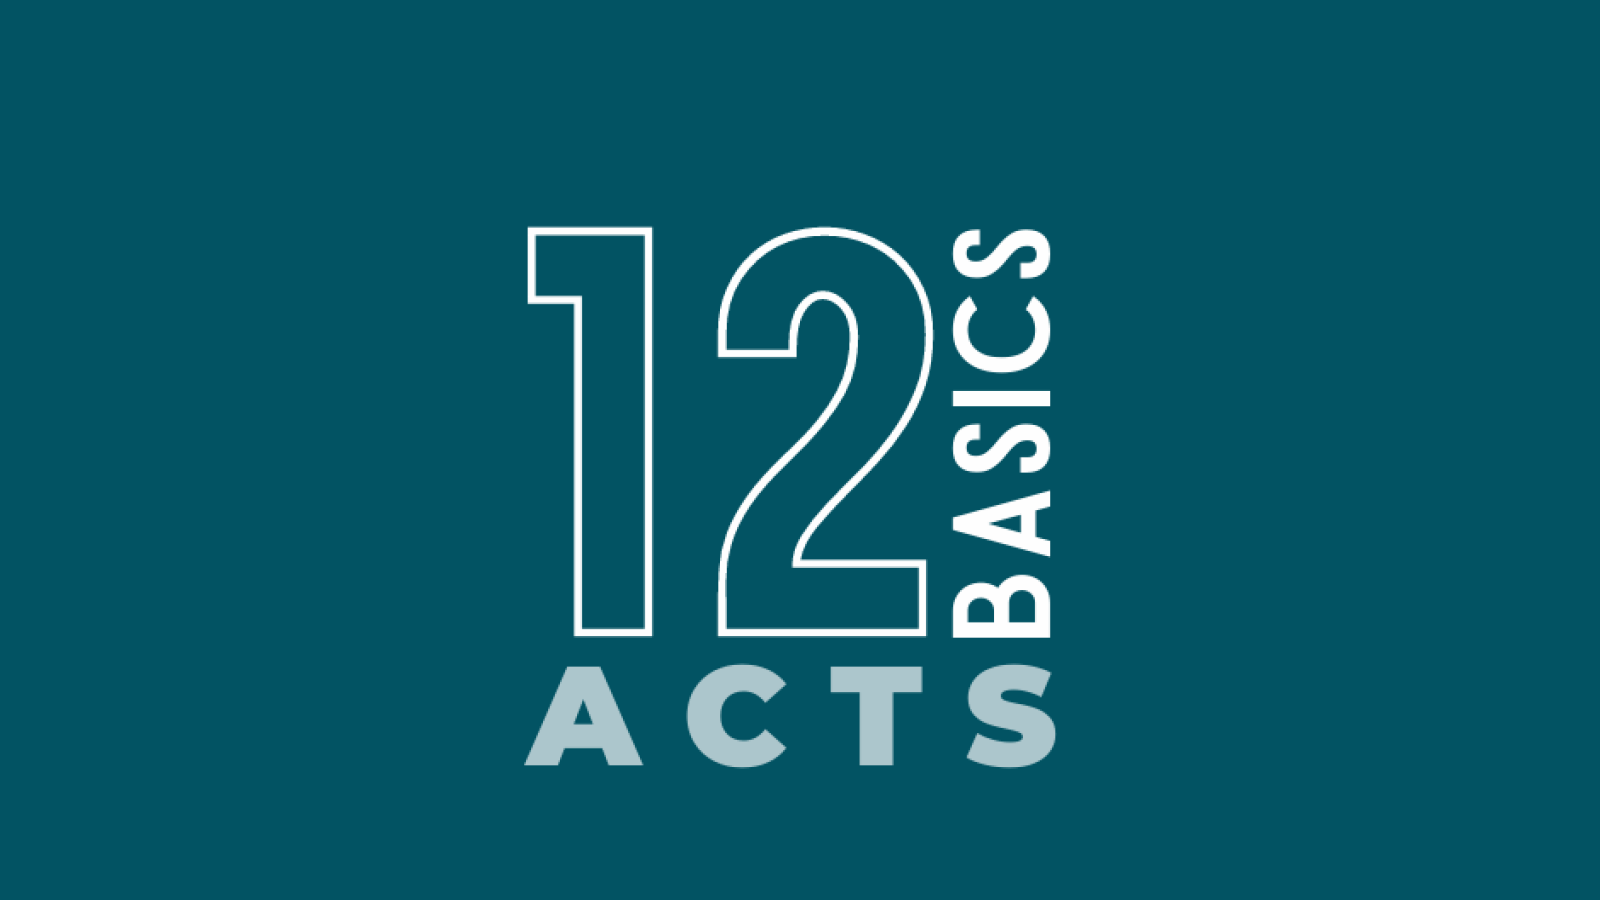 12 Basics: Lesson From the Book of Acts